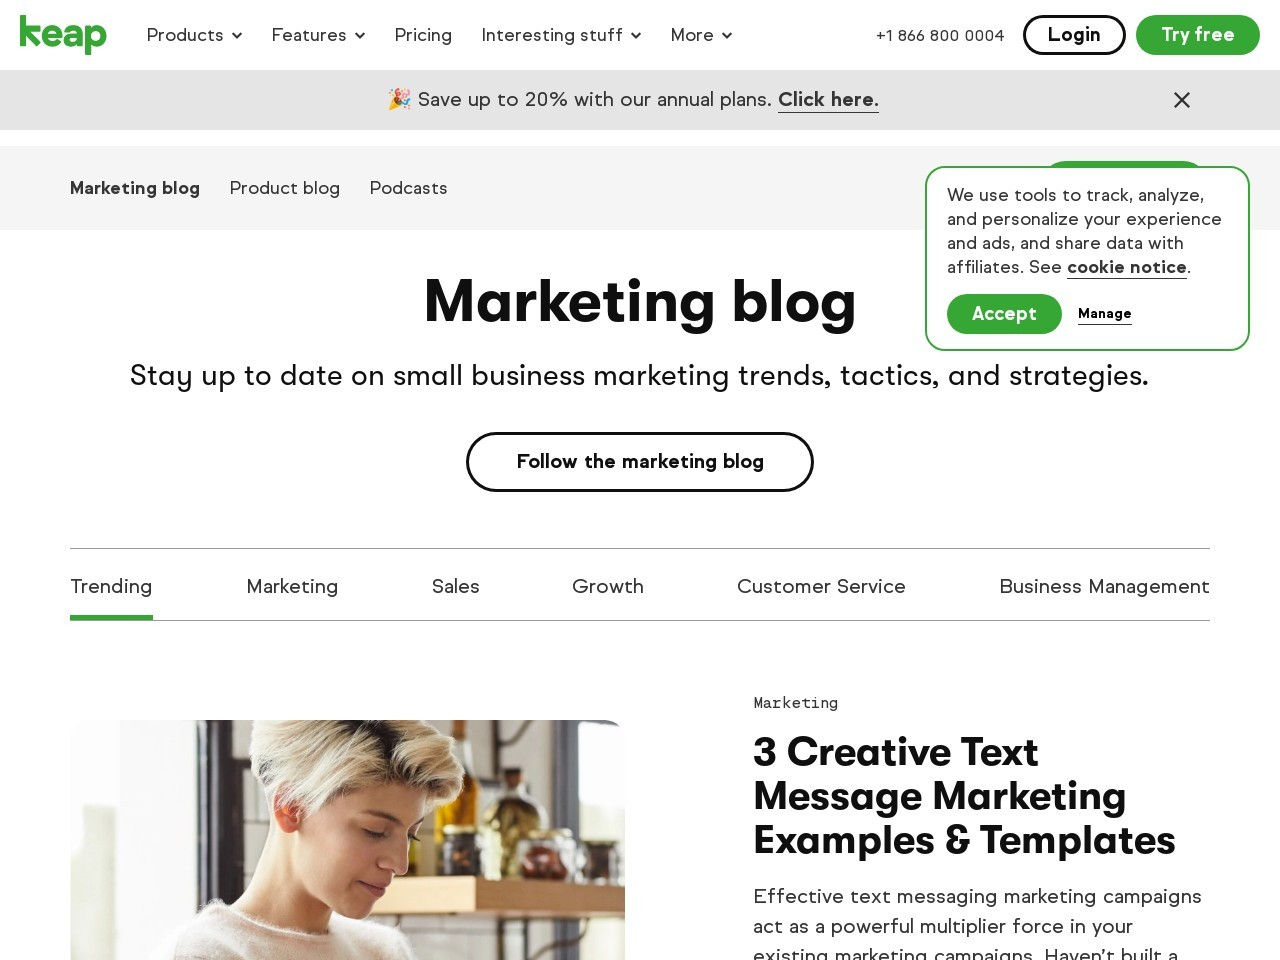 SEO Emarketing Strategy for Small Business – Big Ideas Blog